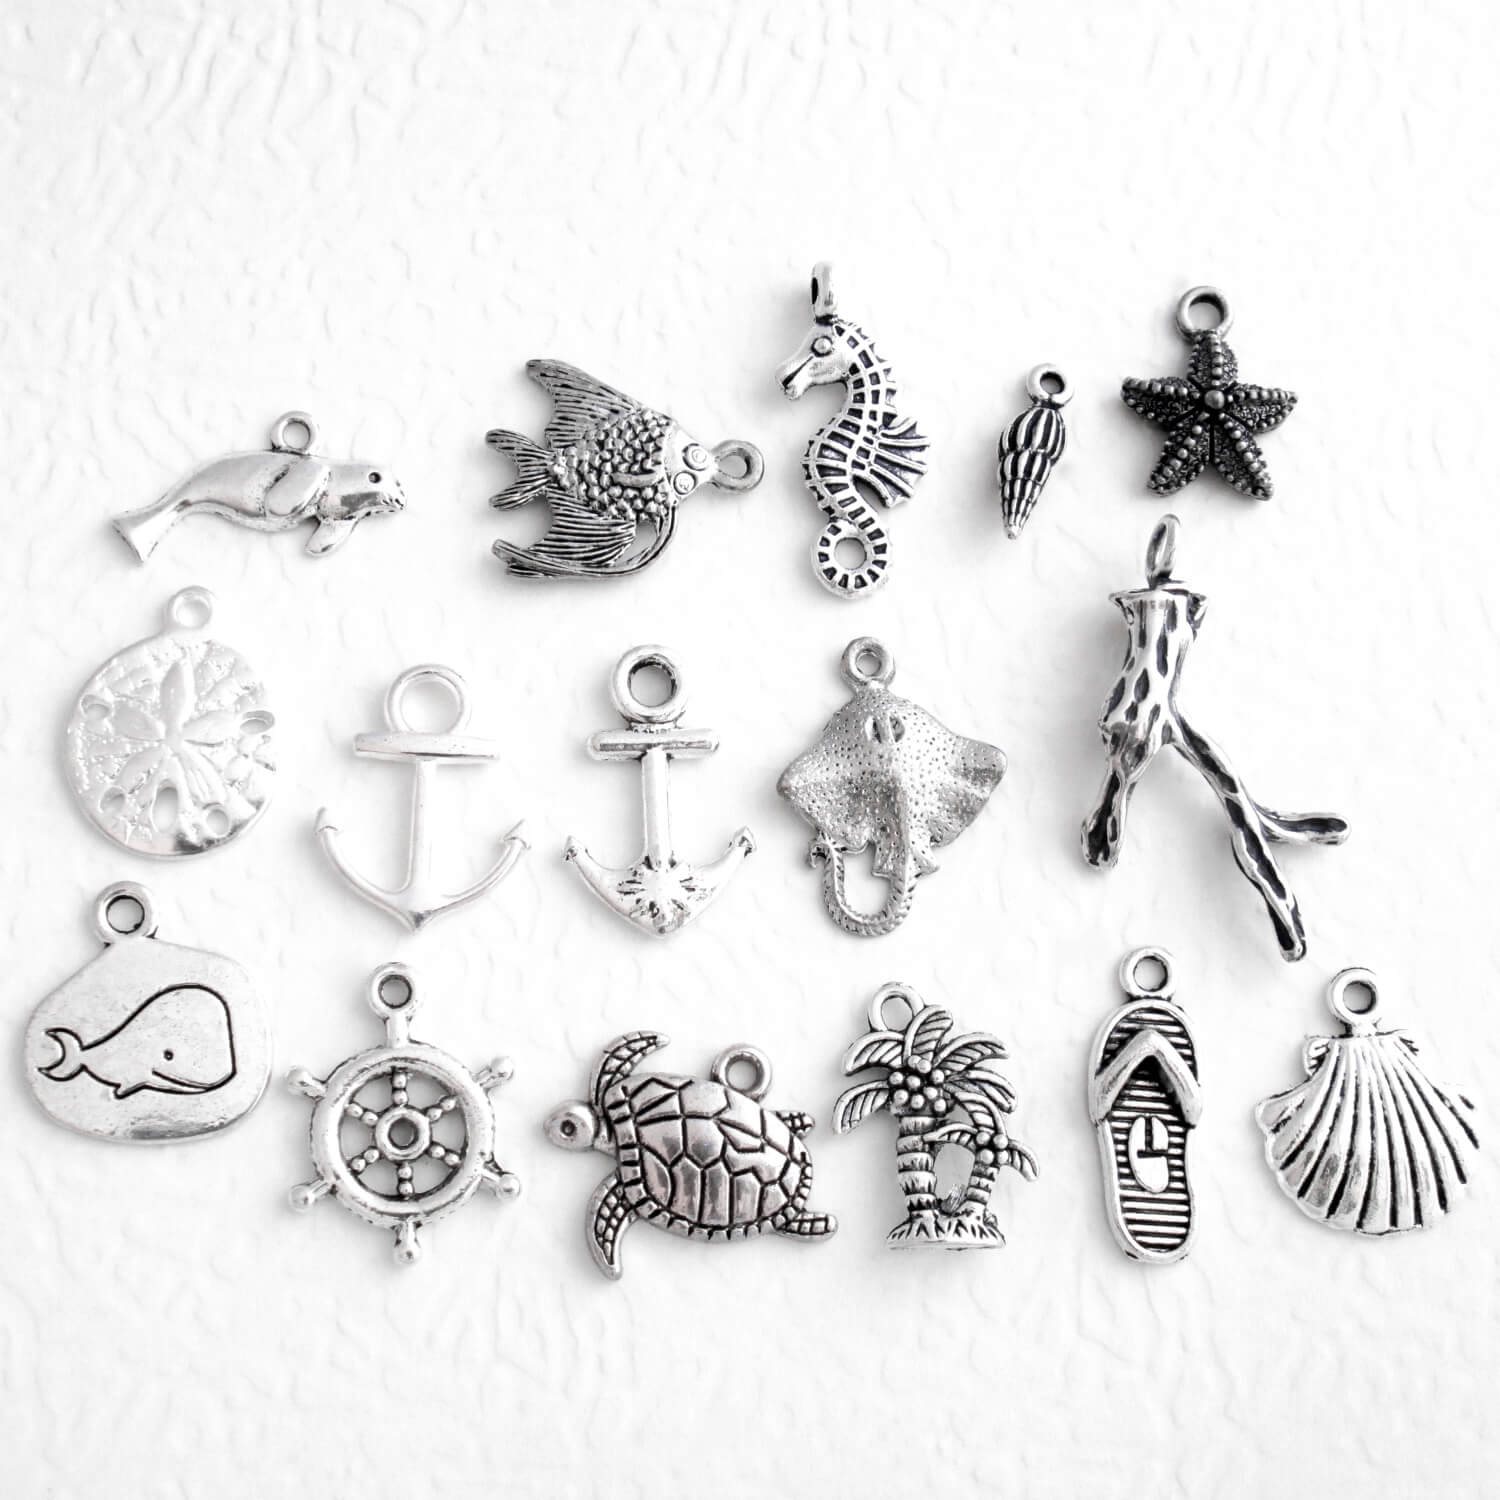 Ocean Charm Add-Ons for Necklaces, Keychains